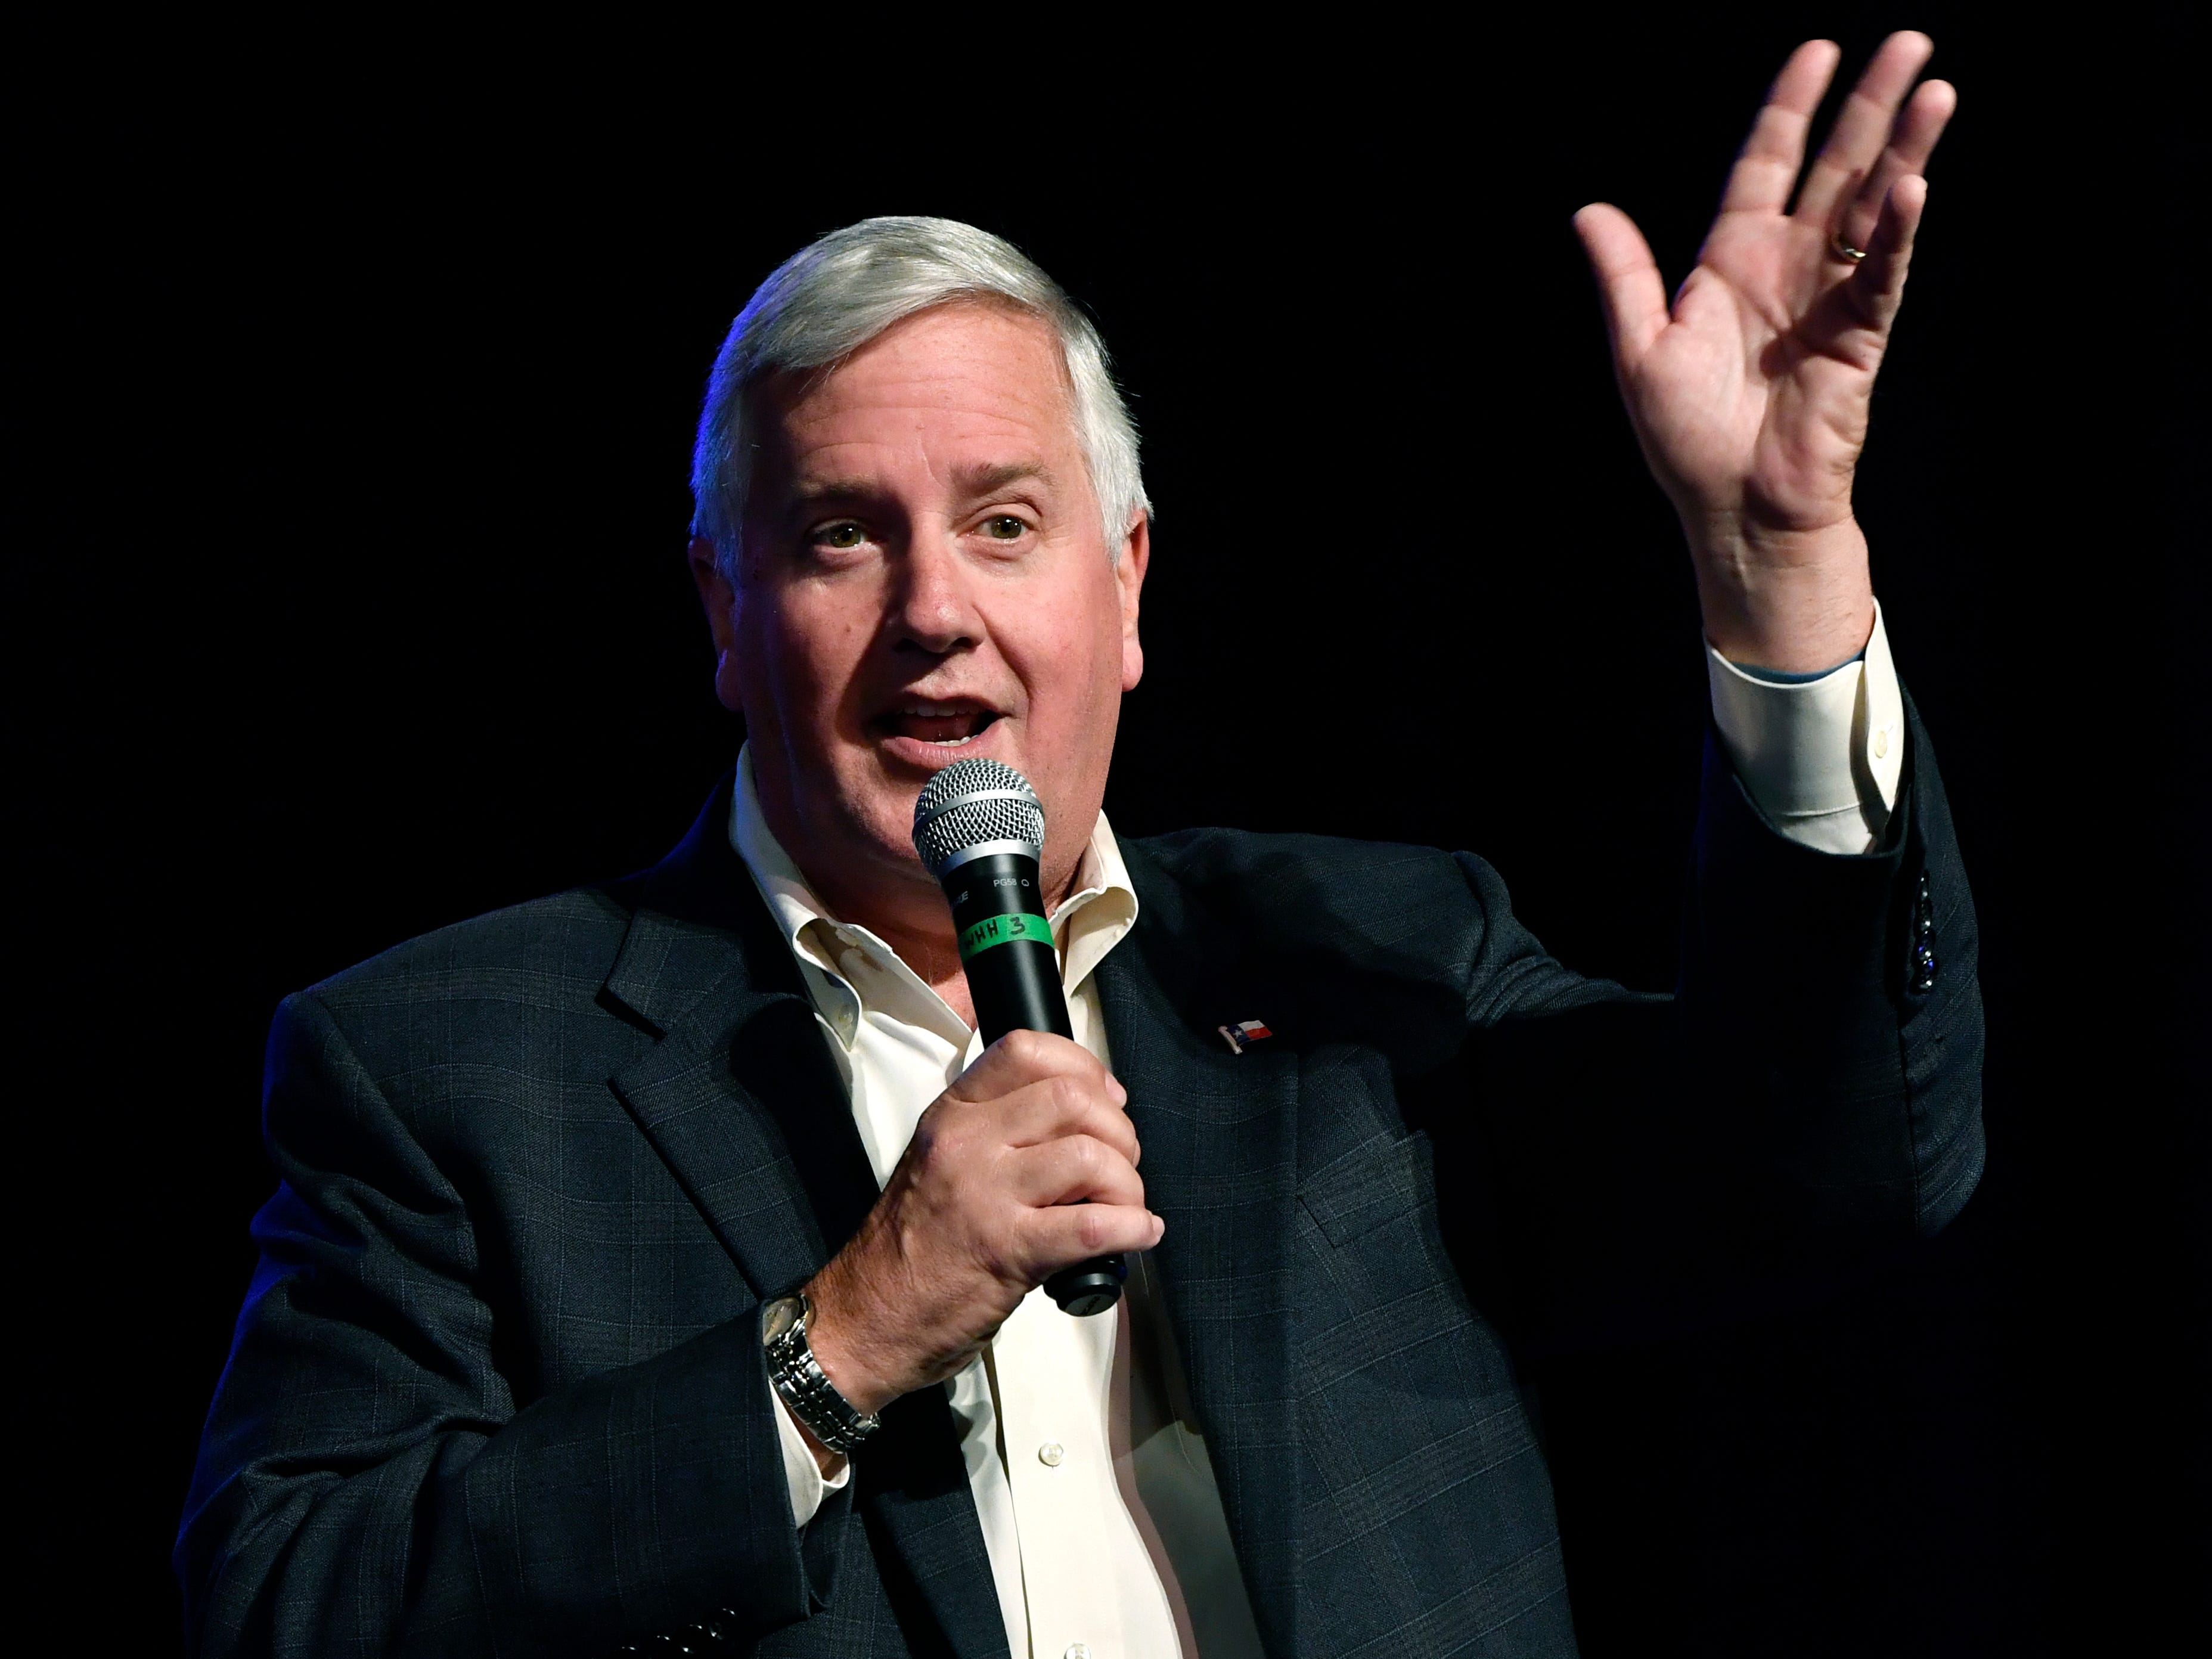 Mike Collier, a Houston CPA running for lieutenant governor, makes his remarks during Thursday's town hall meeting at the Paramount Theatre August 2, 2018.   Collier stressed his commitment to public education and promised to return benefits taken from retired teachers. Five Democrats, including U.S. Senate candidate Beto O'Rourke, spoke to a crowd of nearly 800 people.